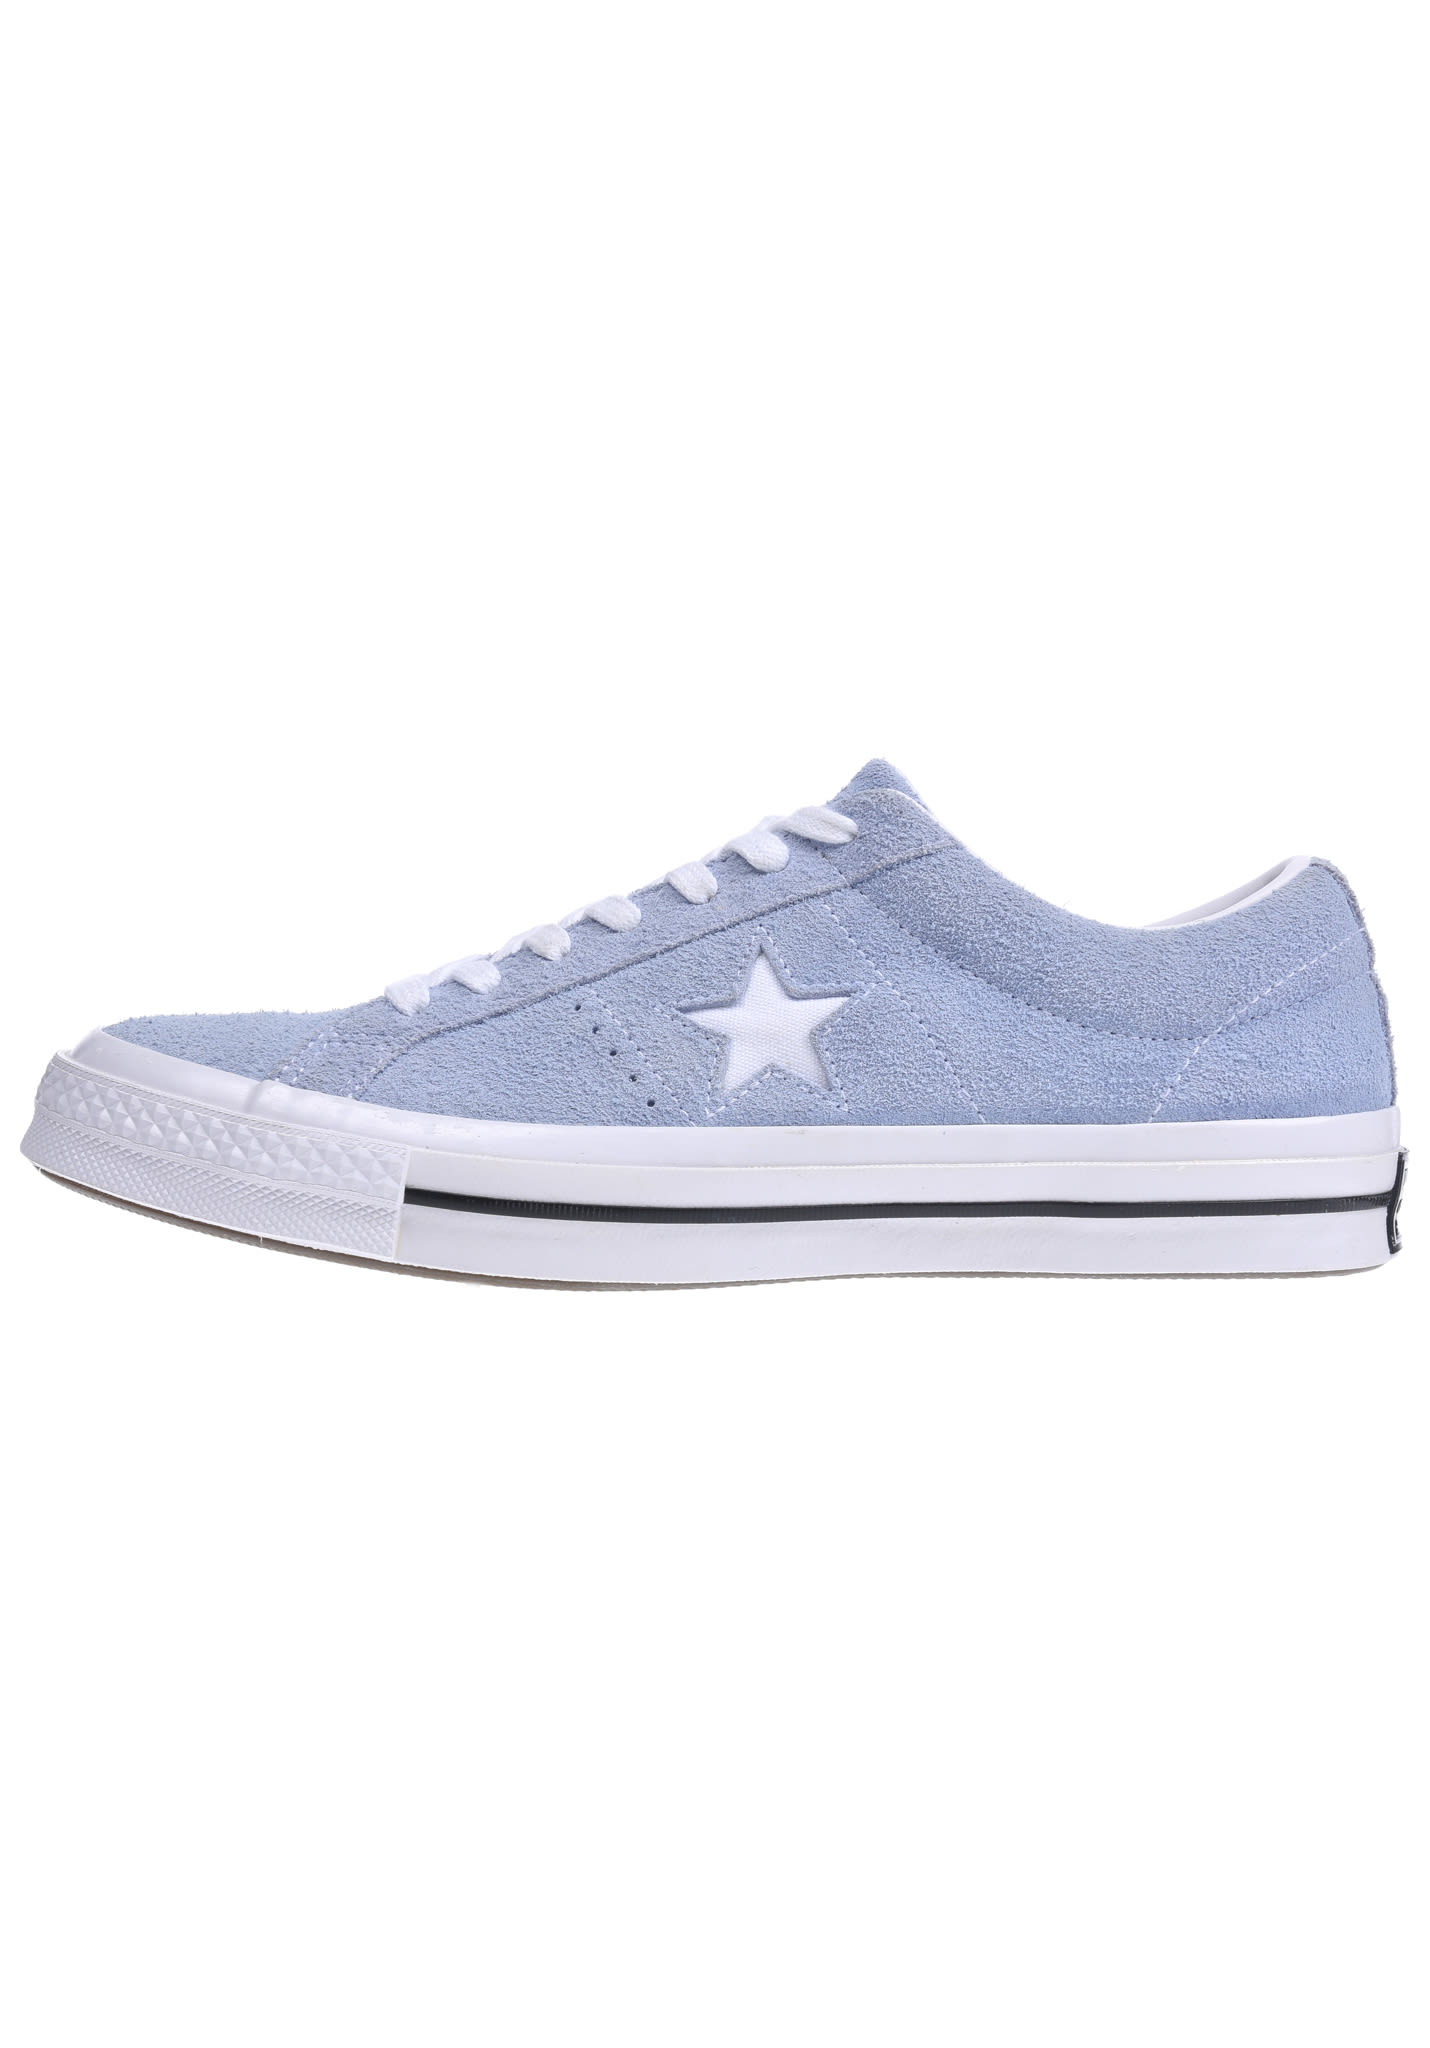 Converse One Star OX - Sneakers for Men - Blue - Planet Sports aec0e95c4